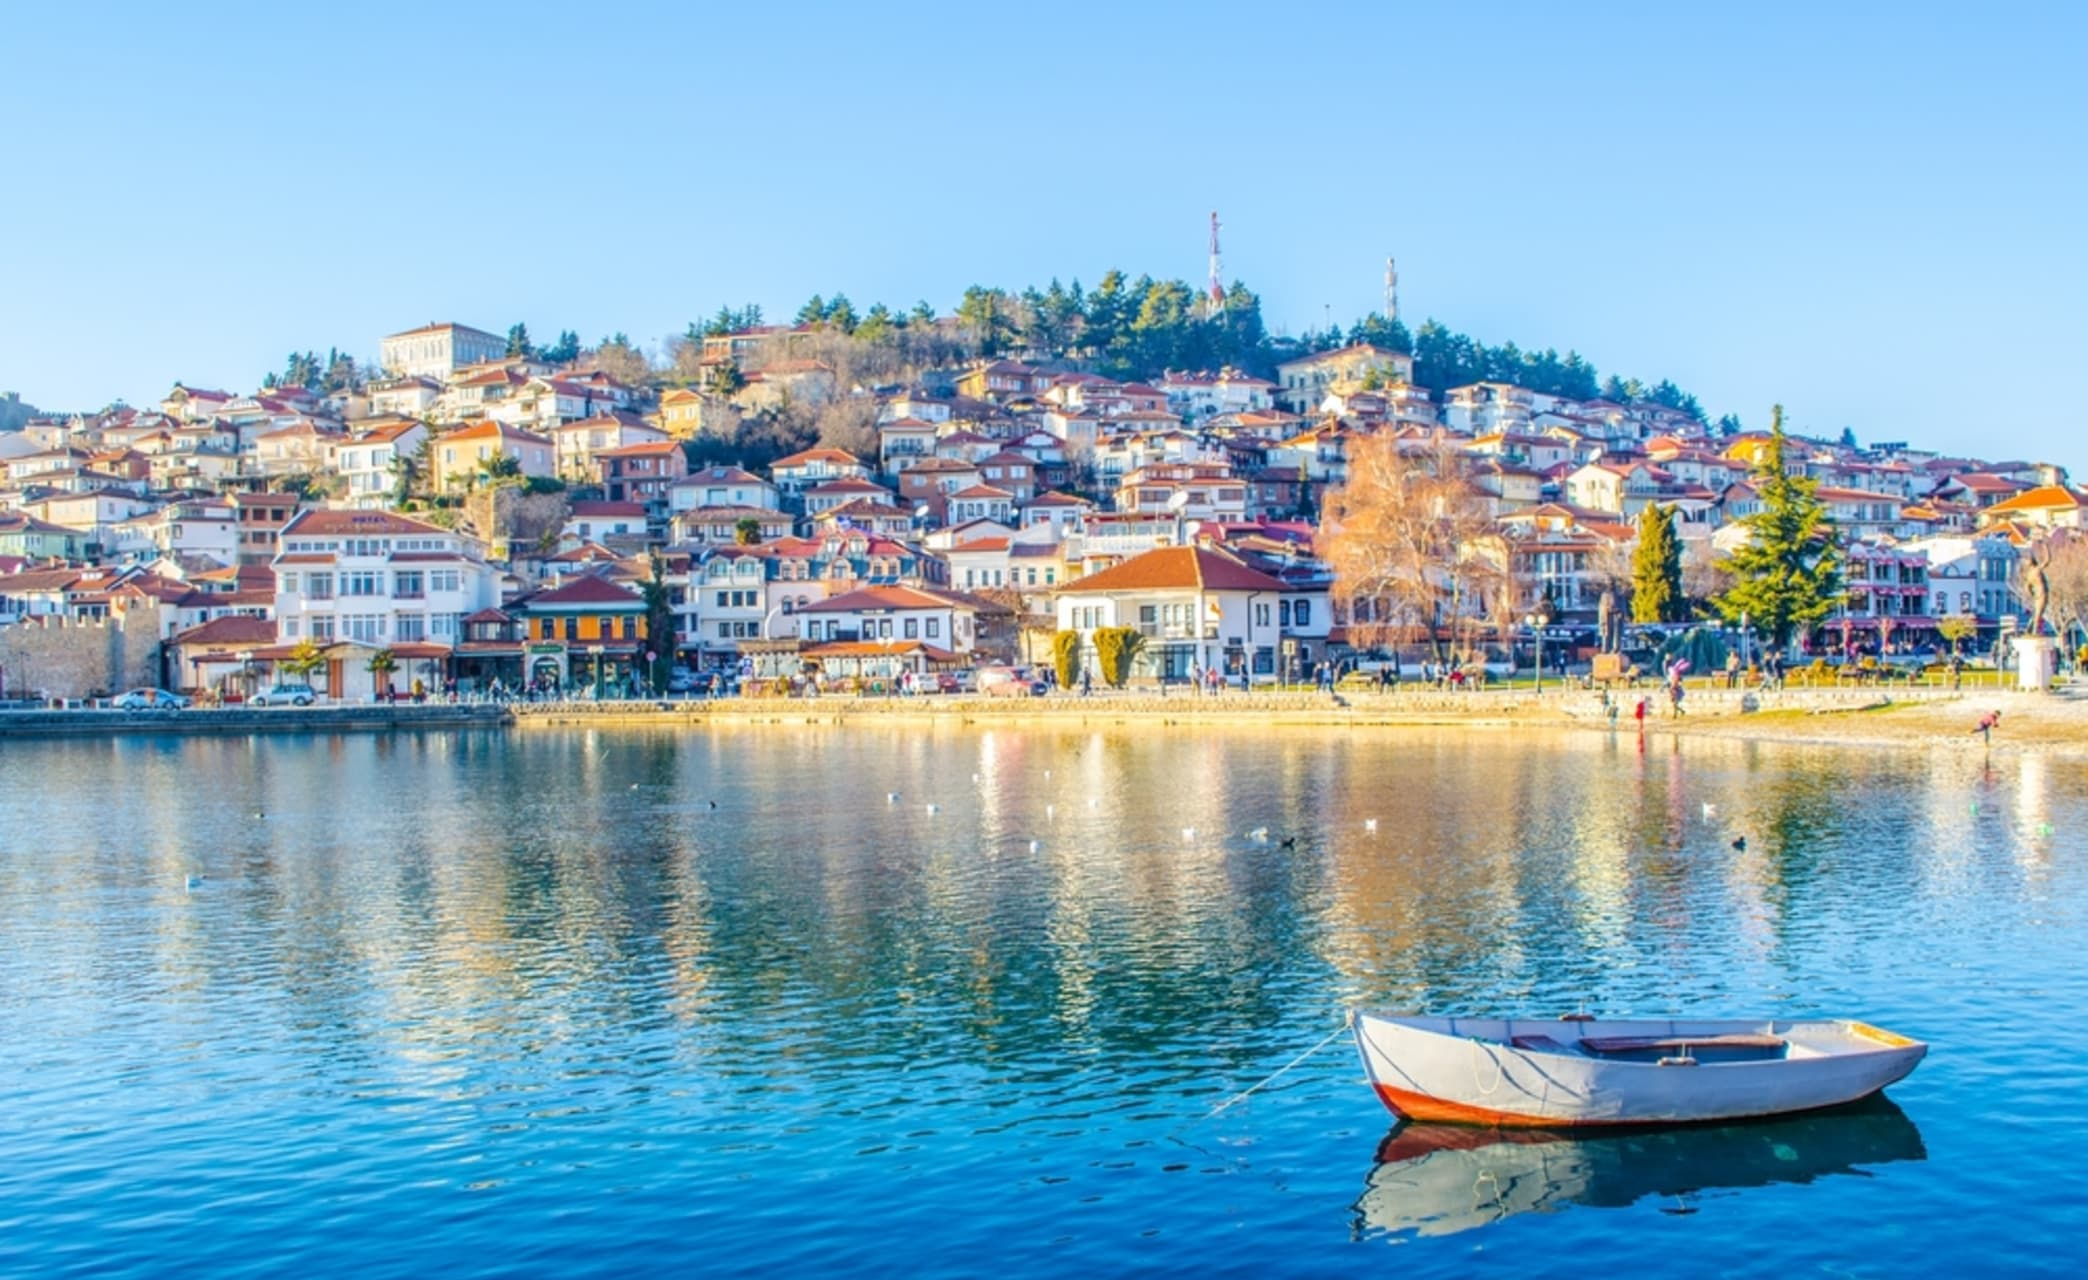 Ohrid - Old town of Ohrid - The Colorful Lake Site